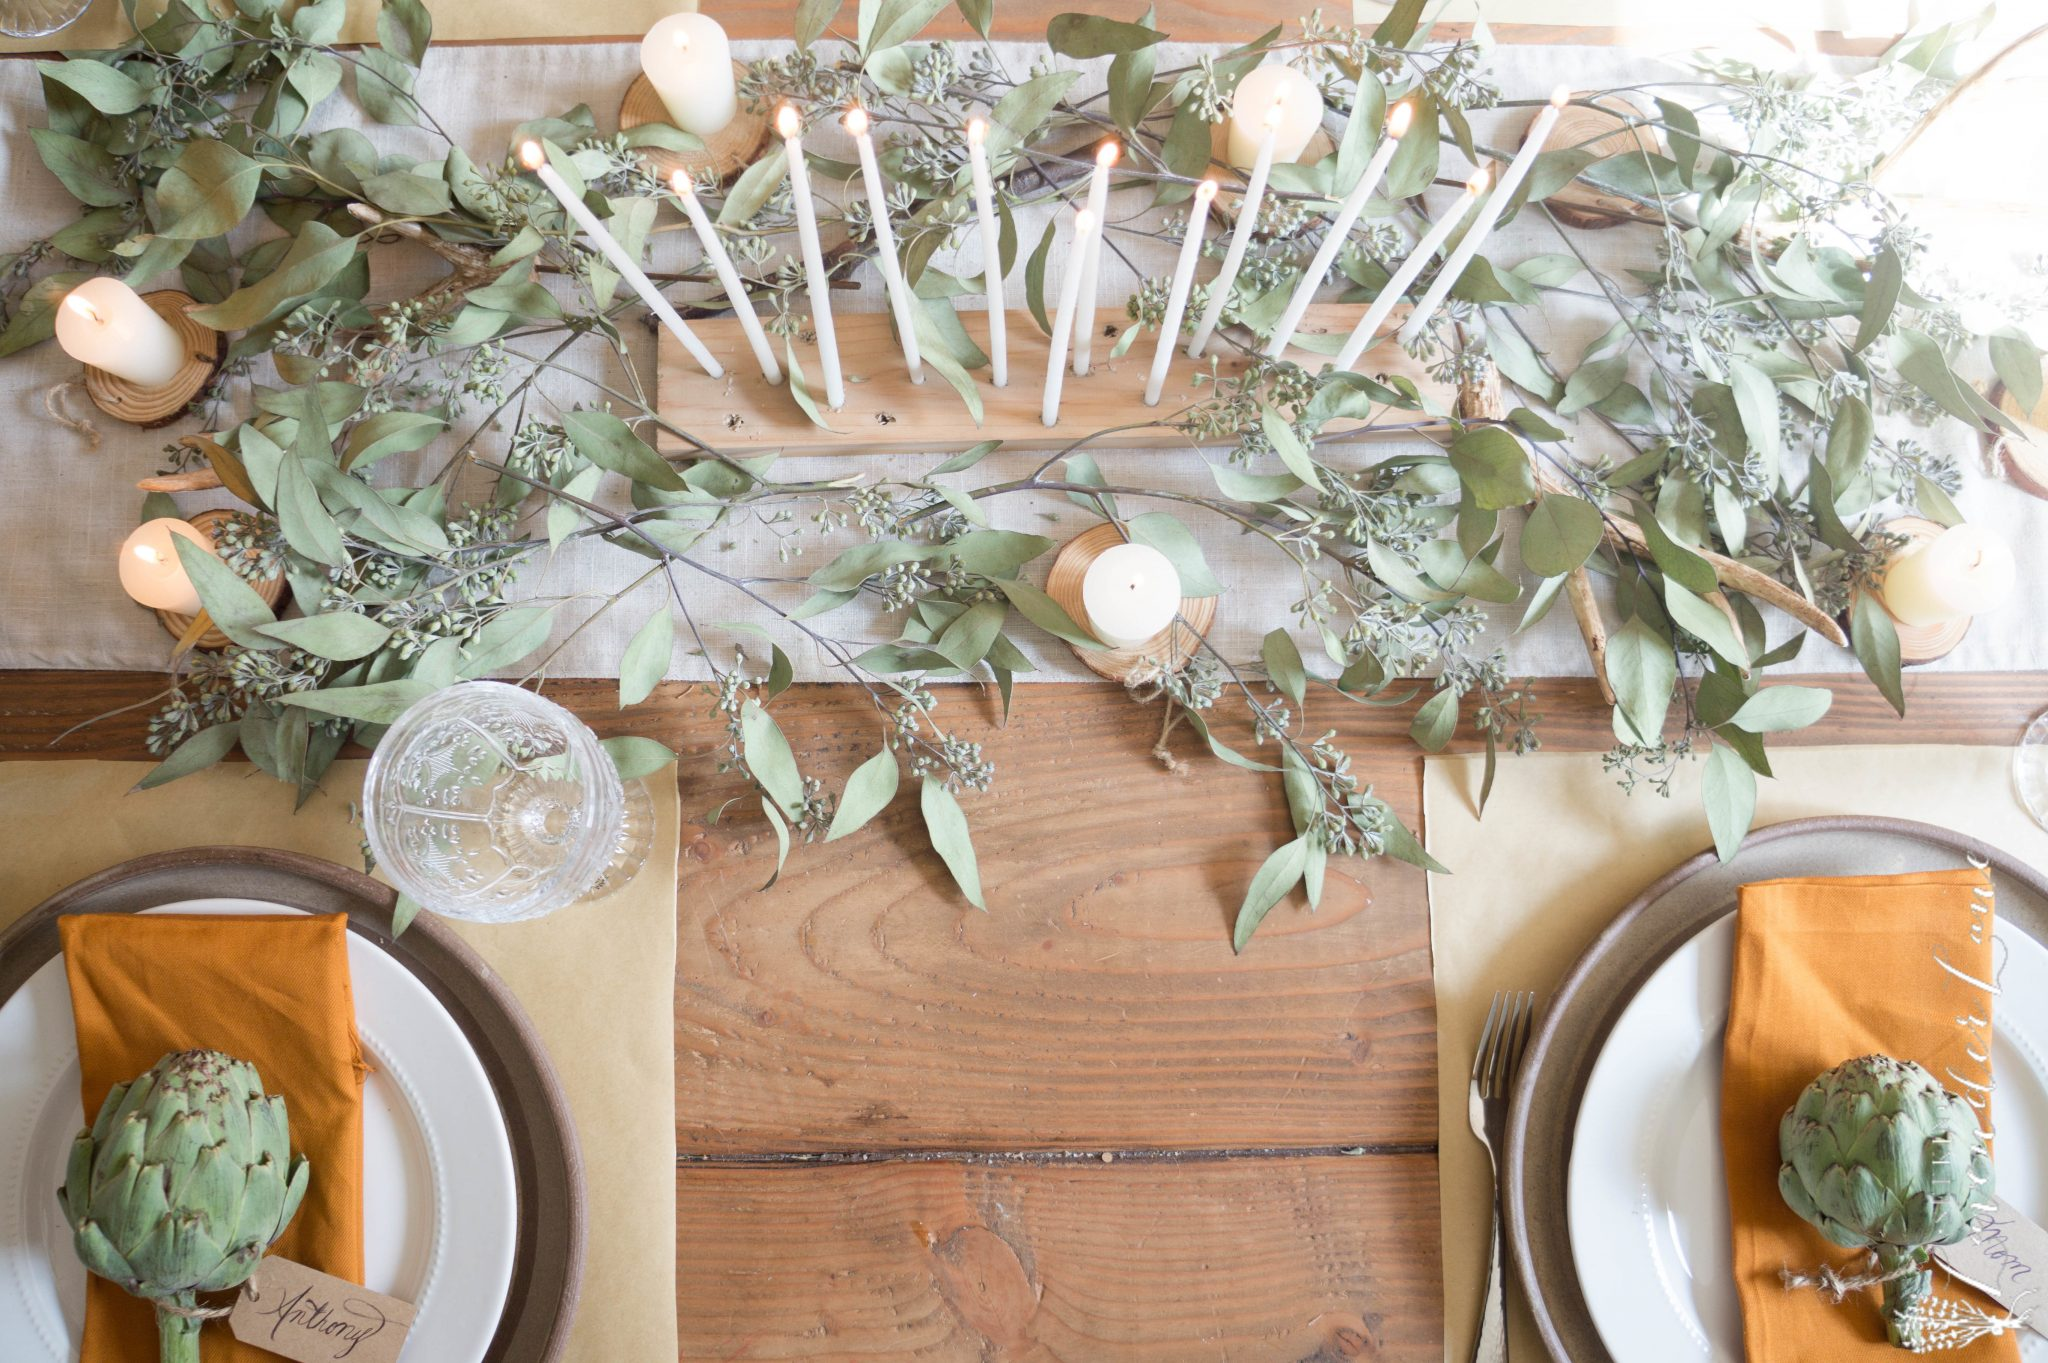 greenery on a table set for thanksgiving